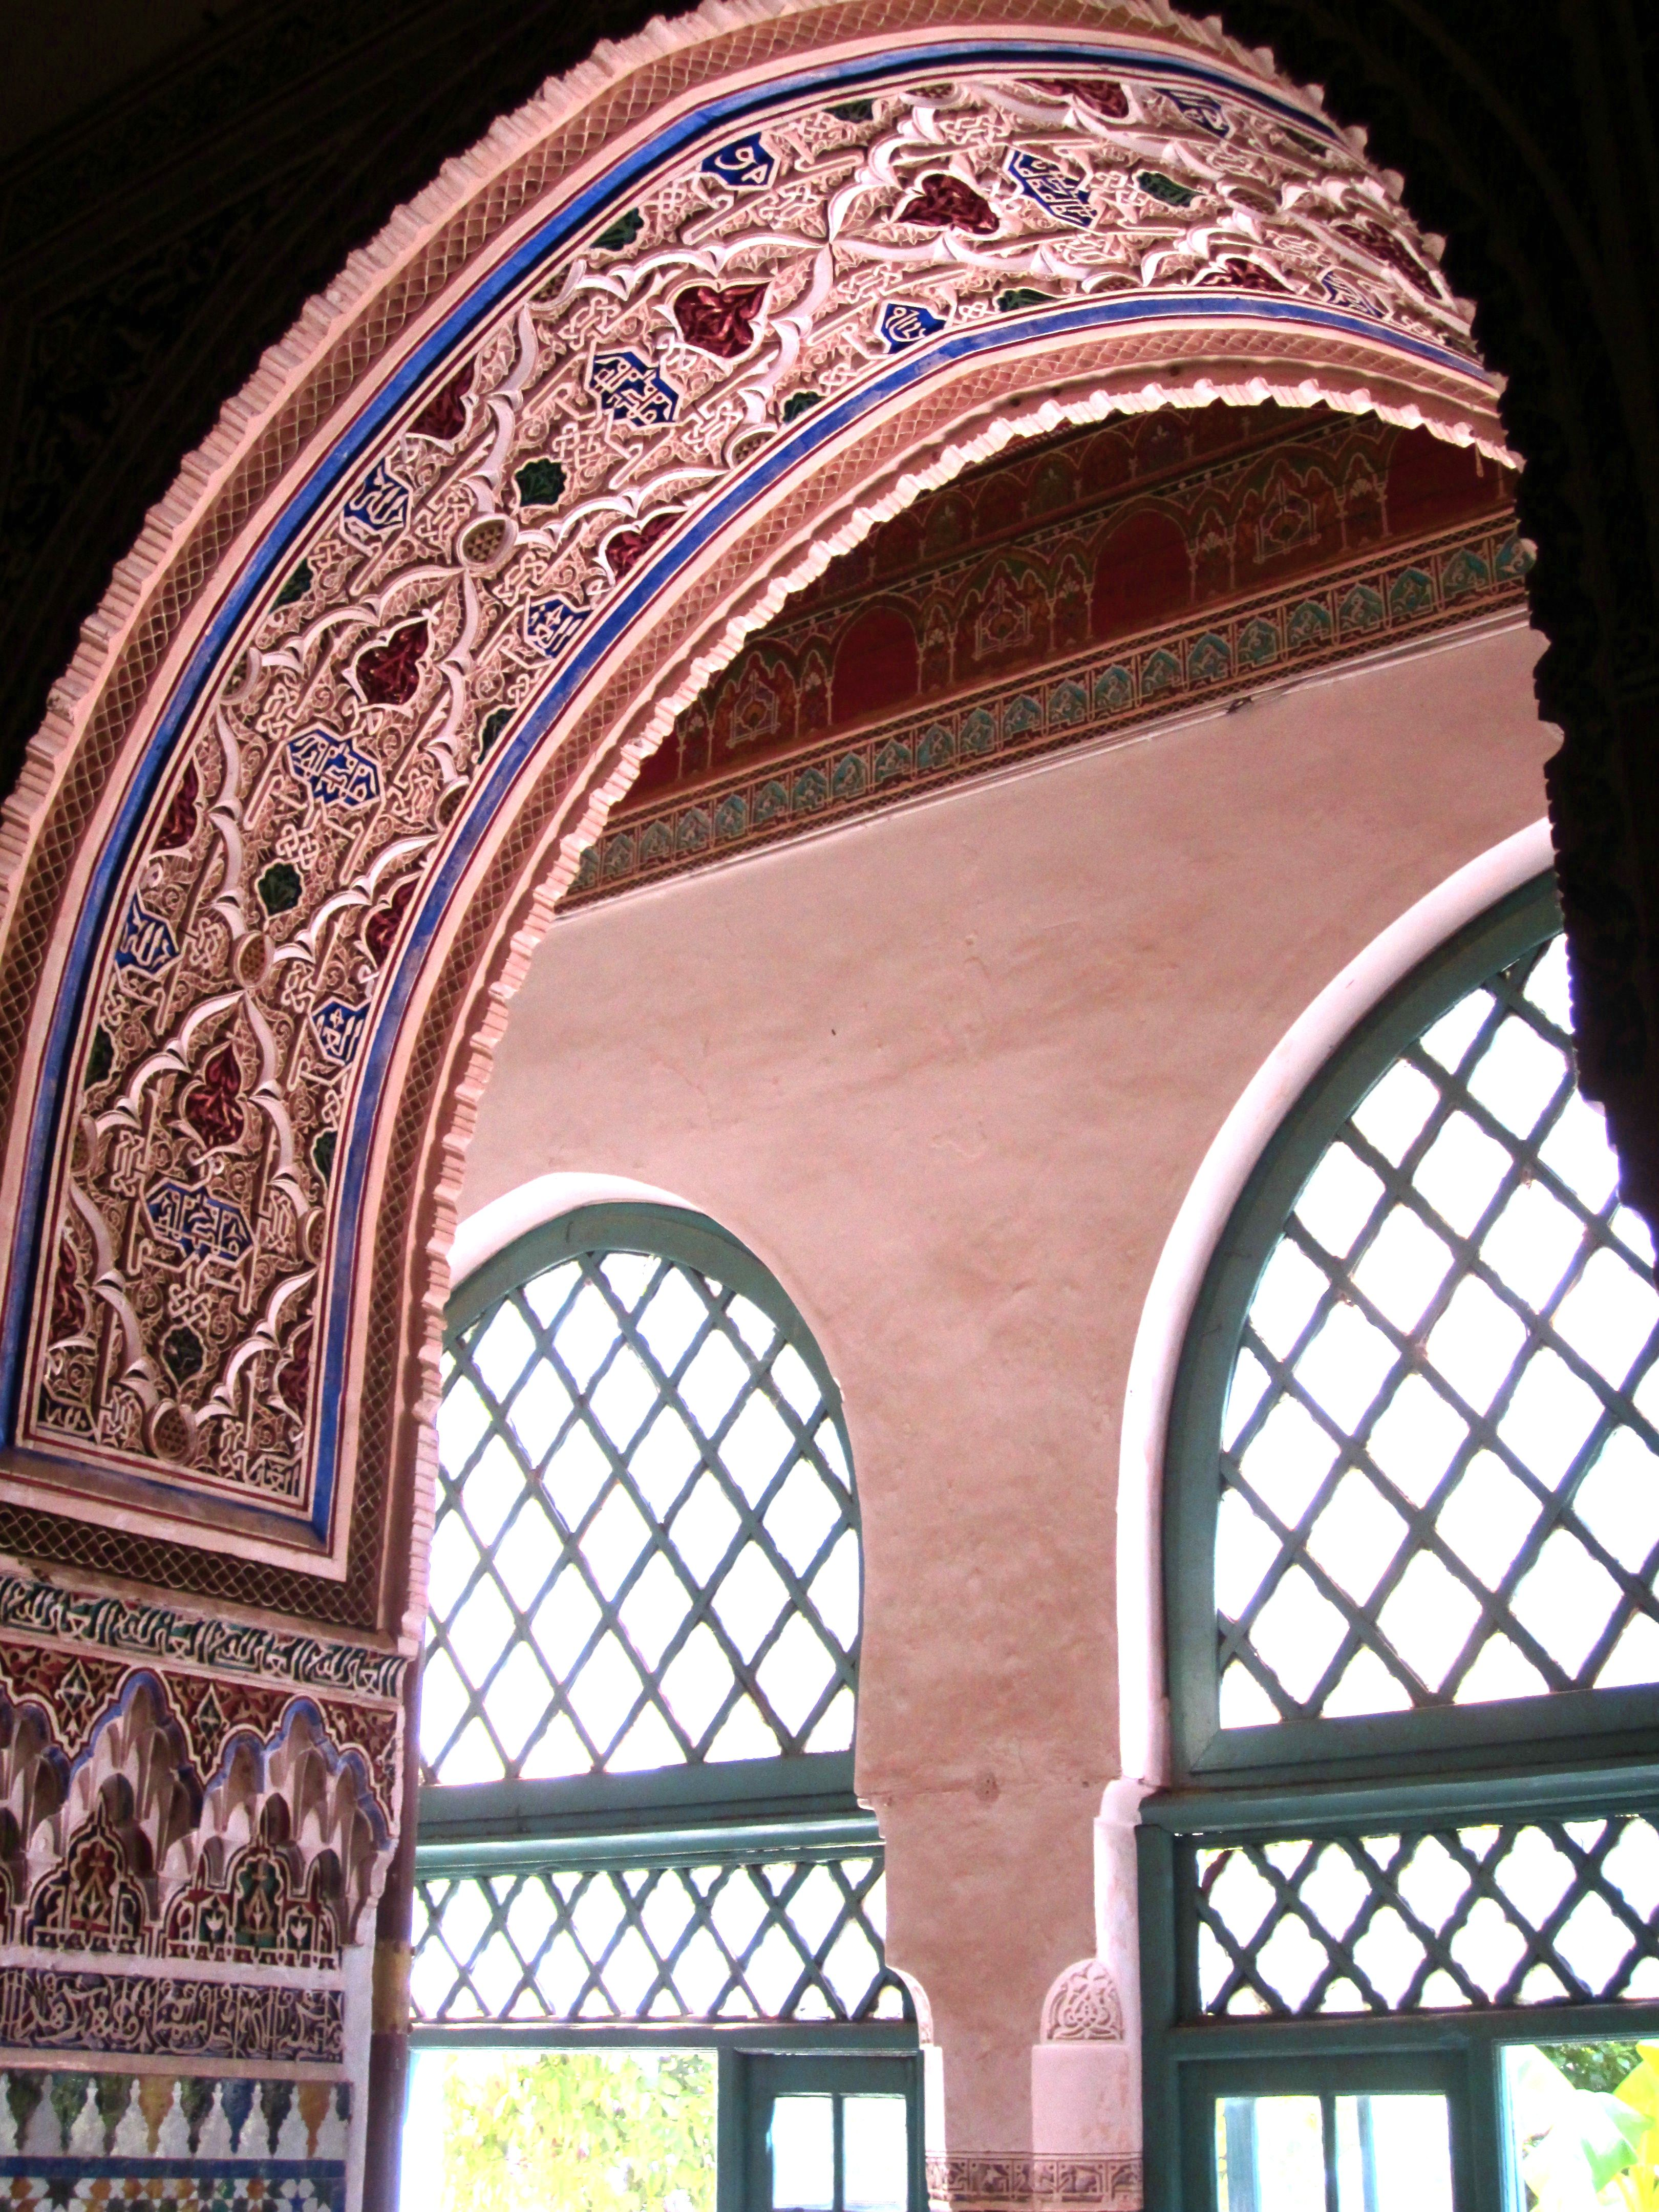 Moroccan Archway | Moroccan Blend | Pinterest for Moroccan Archway  589ifm